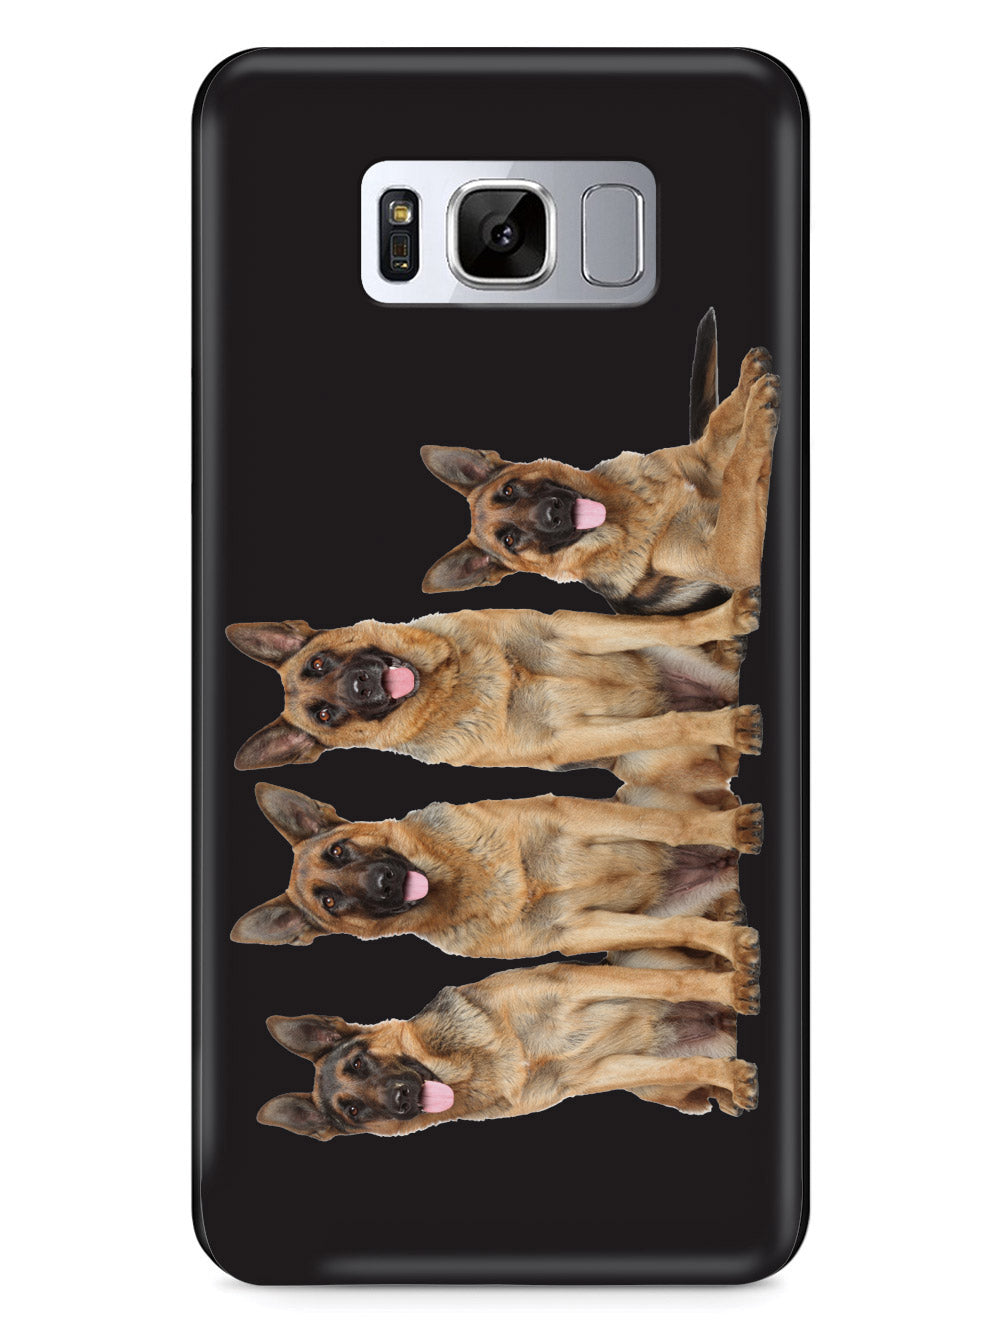 German Shepherd Squad - Black Case